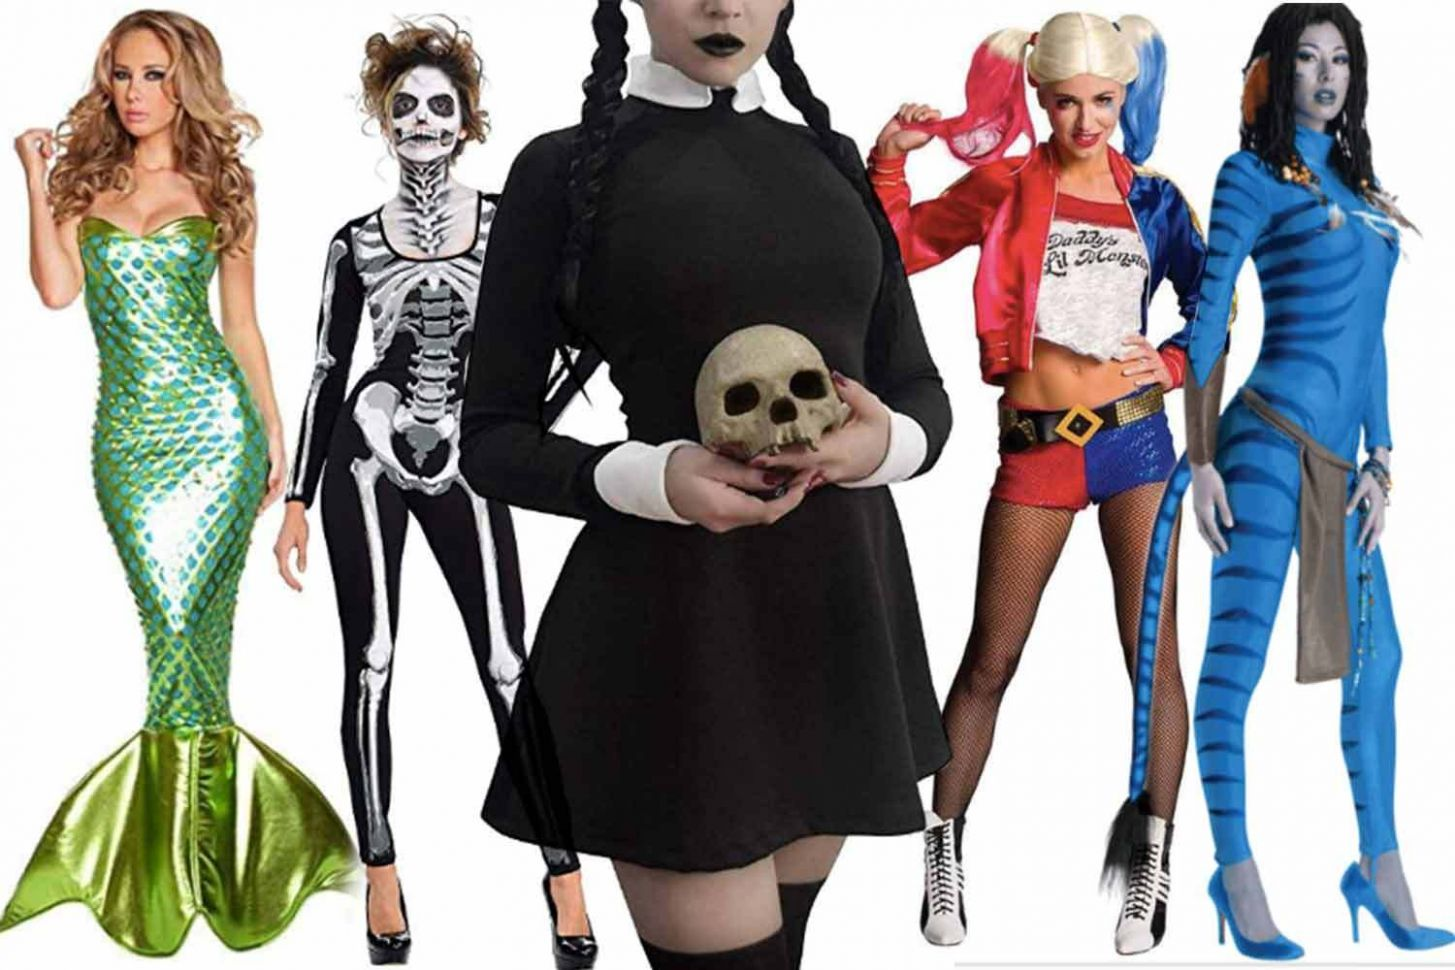 Best Halloween Costumes for Women 8 | The Sun UK - halloween ideas uk